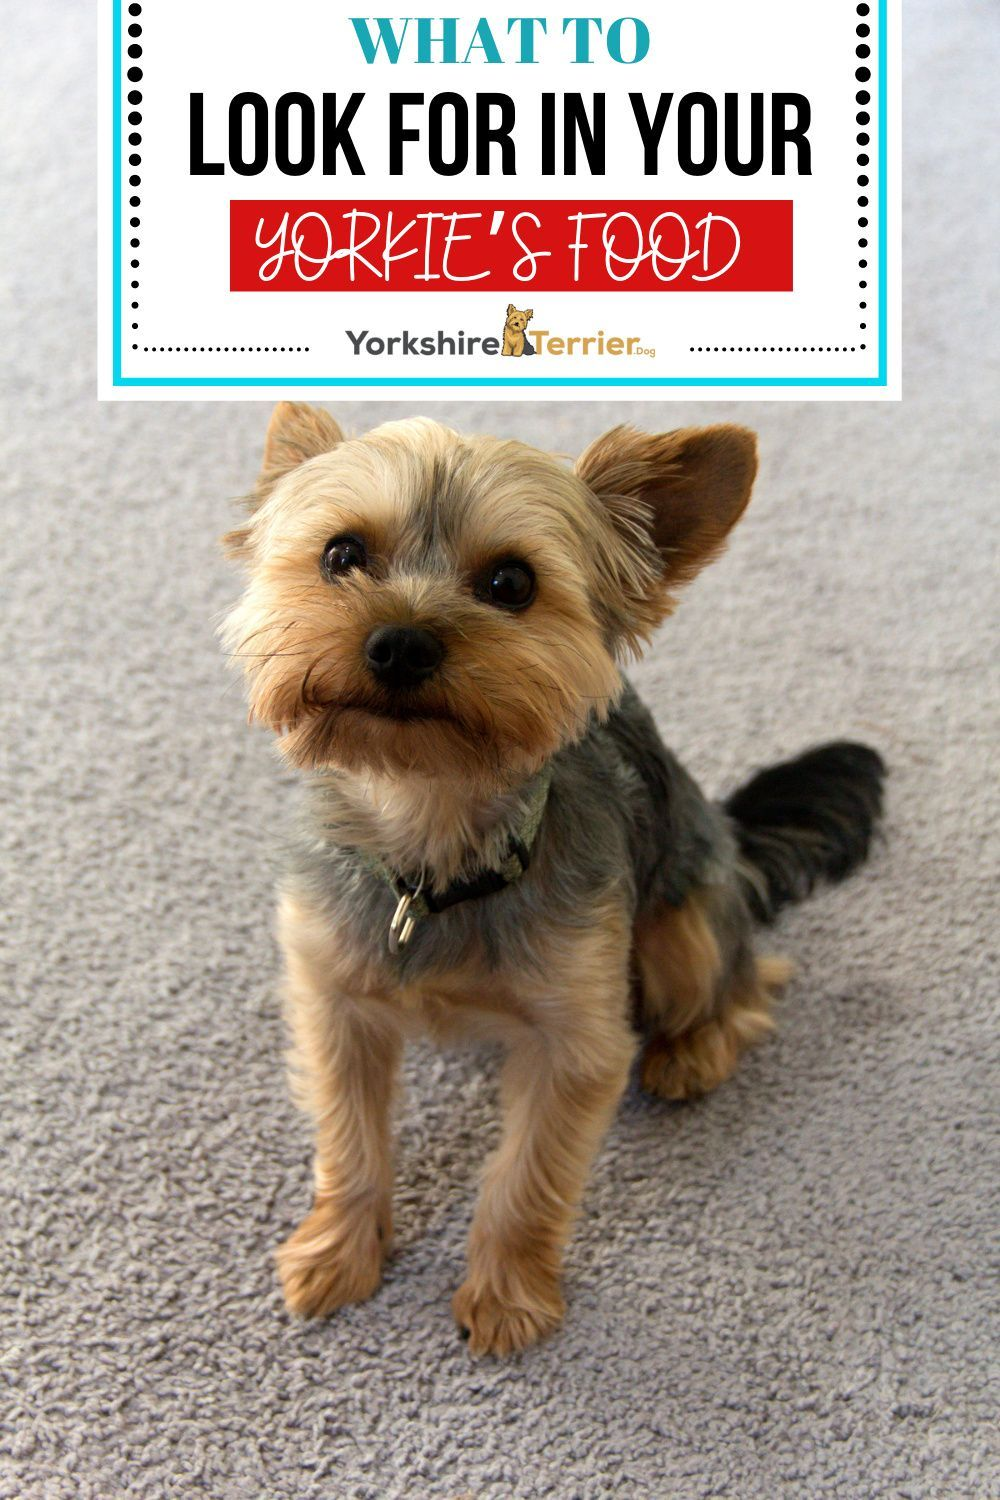 5 Best Soft Dog Food For Yorkies Across Life Stages In 2020 Yorkie Best Dog Food Puppy Pads Training